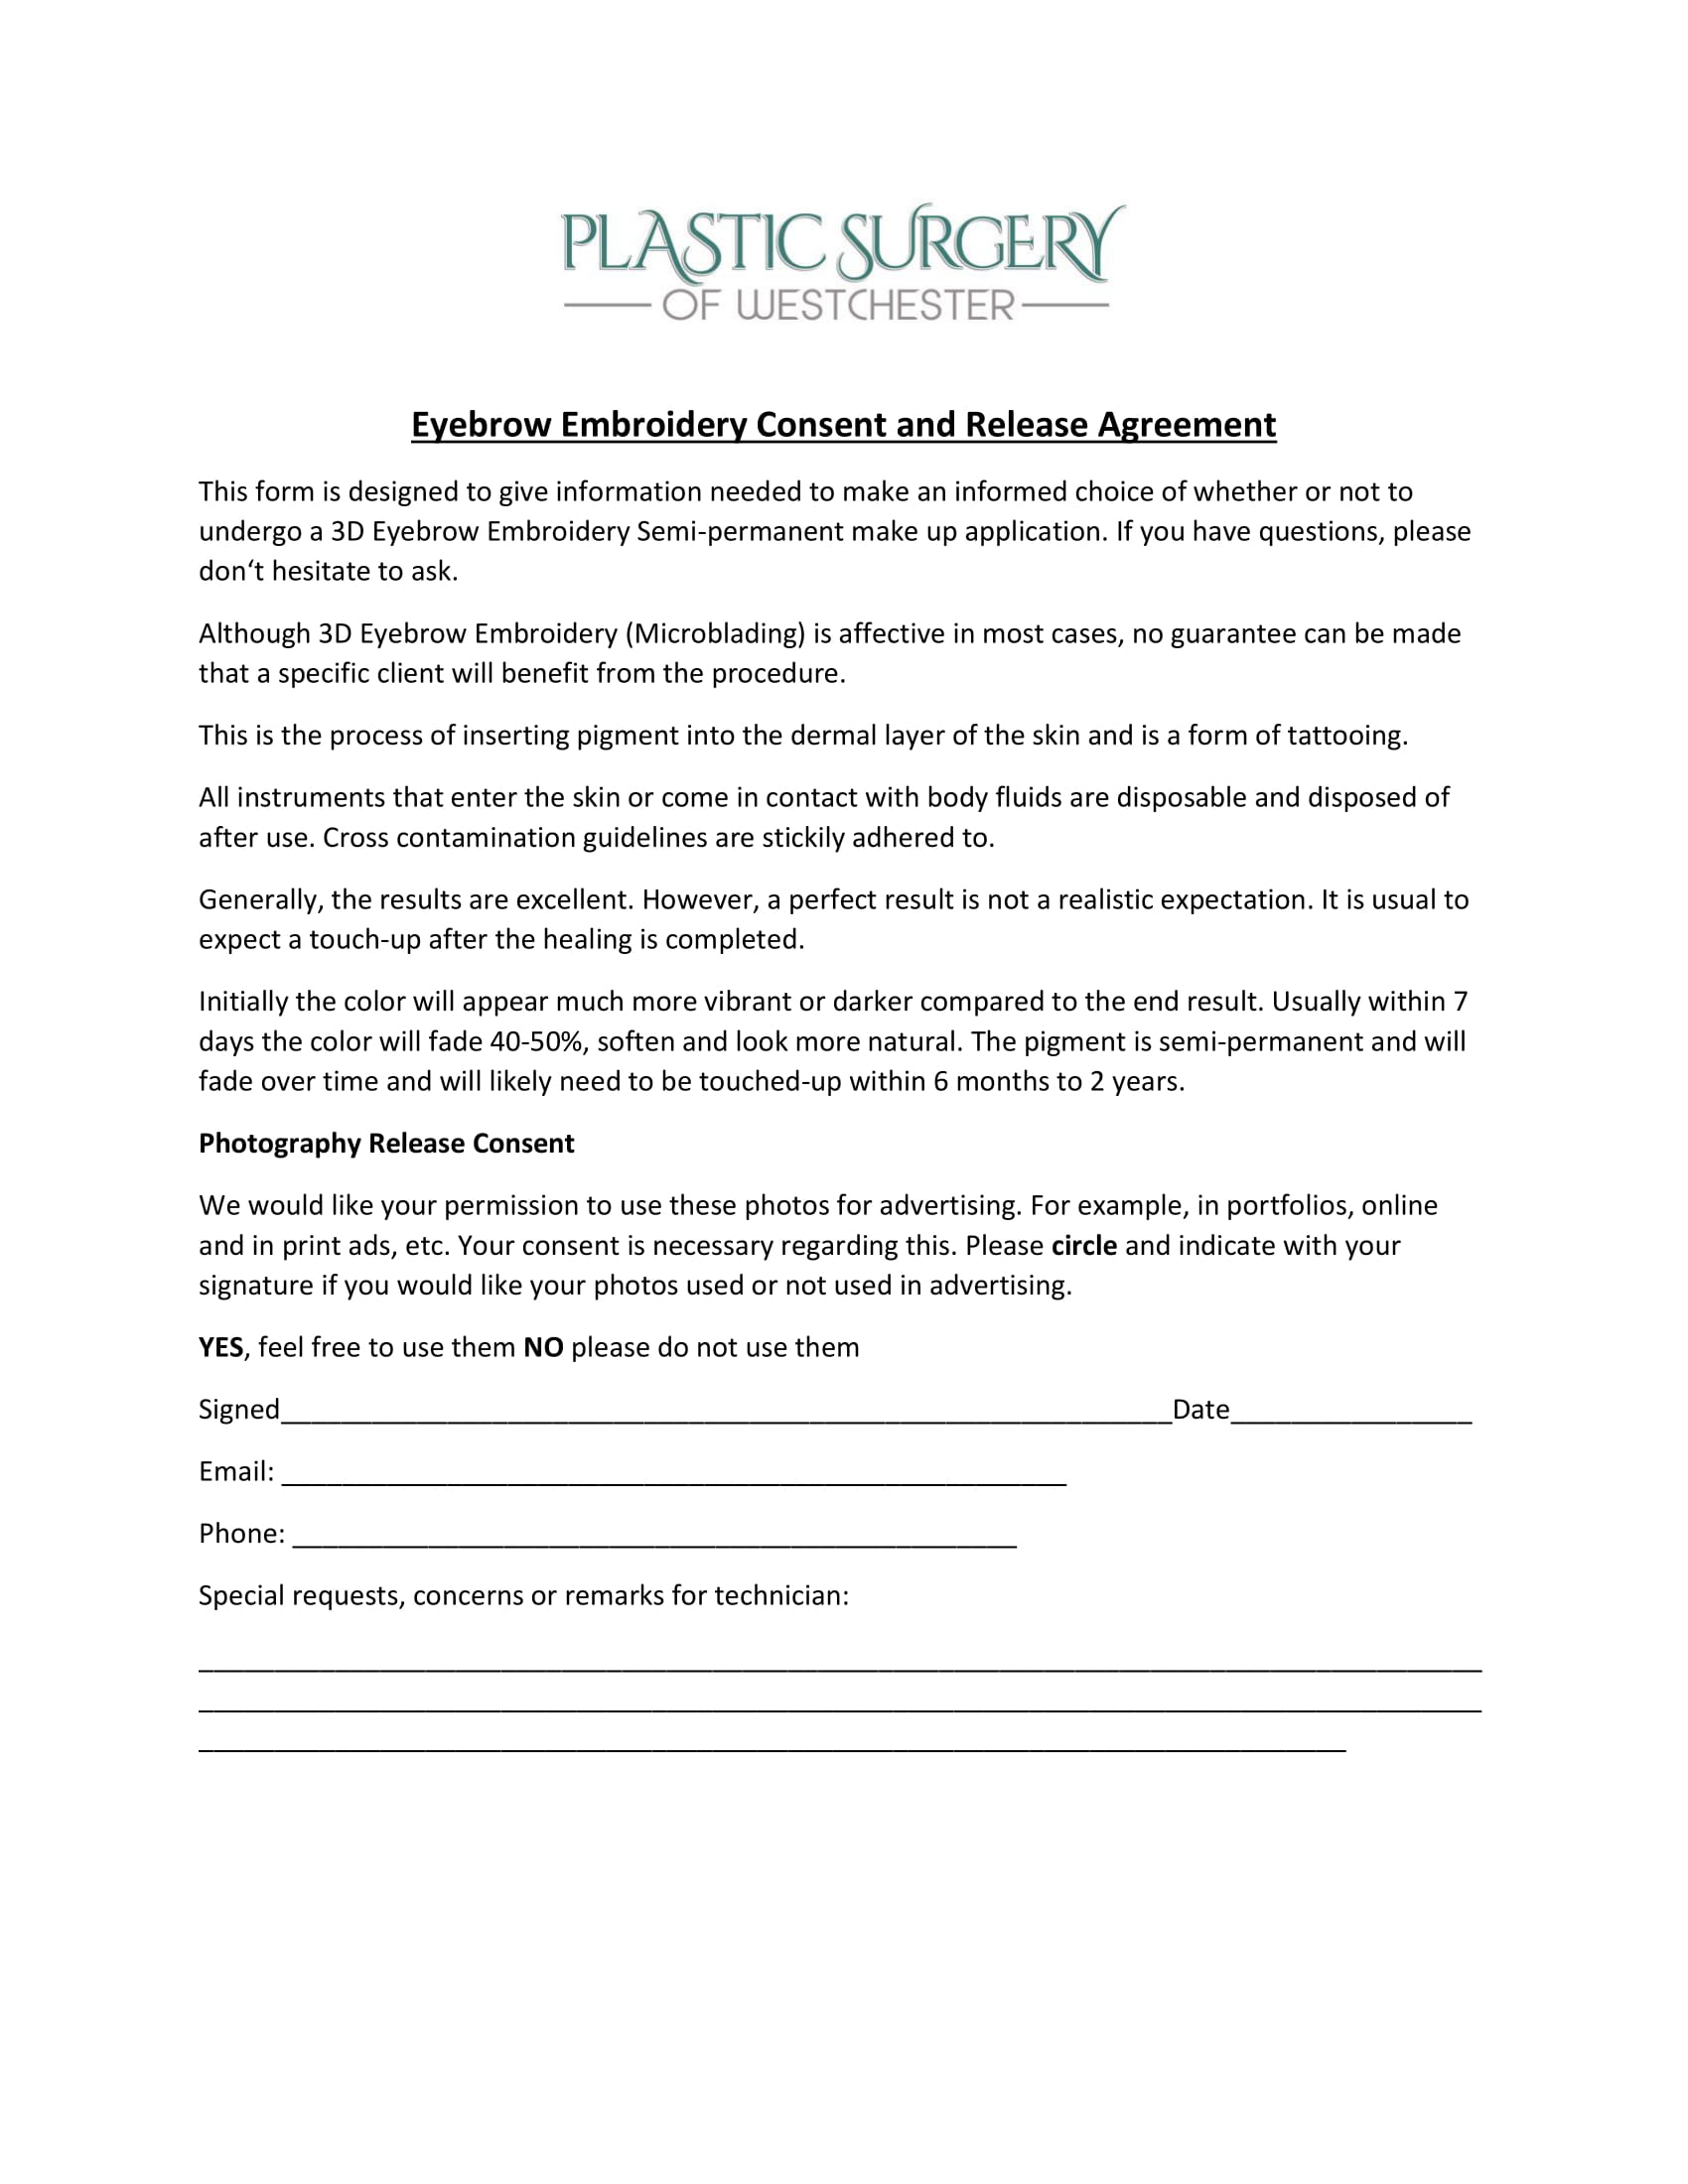 eyebrow embroidery tattoo consent release agreement form 1